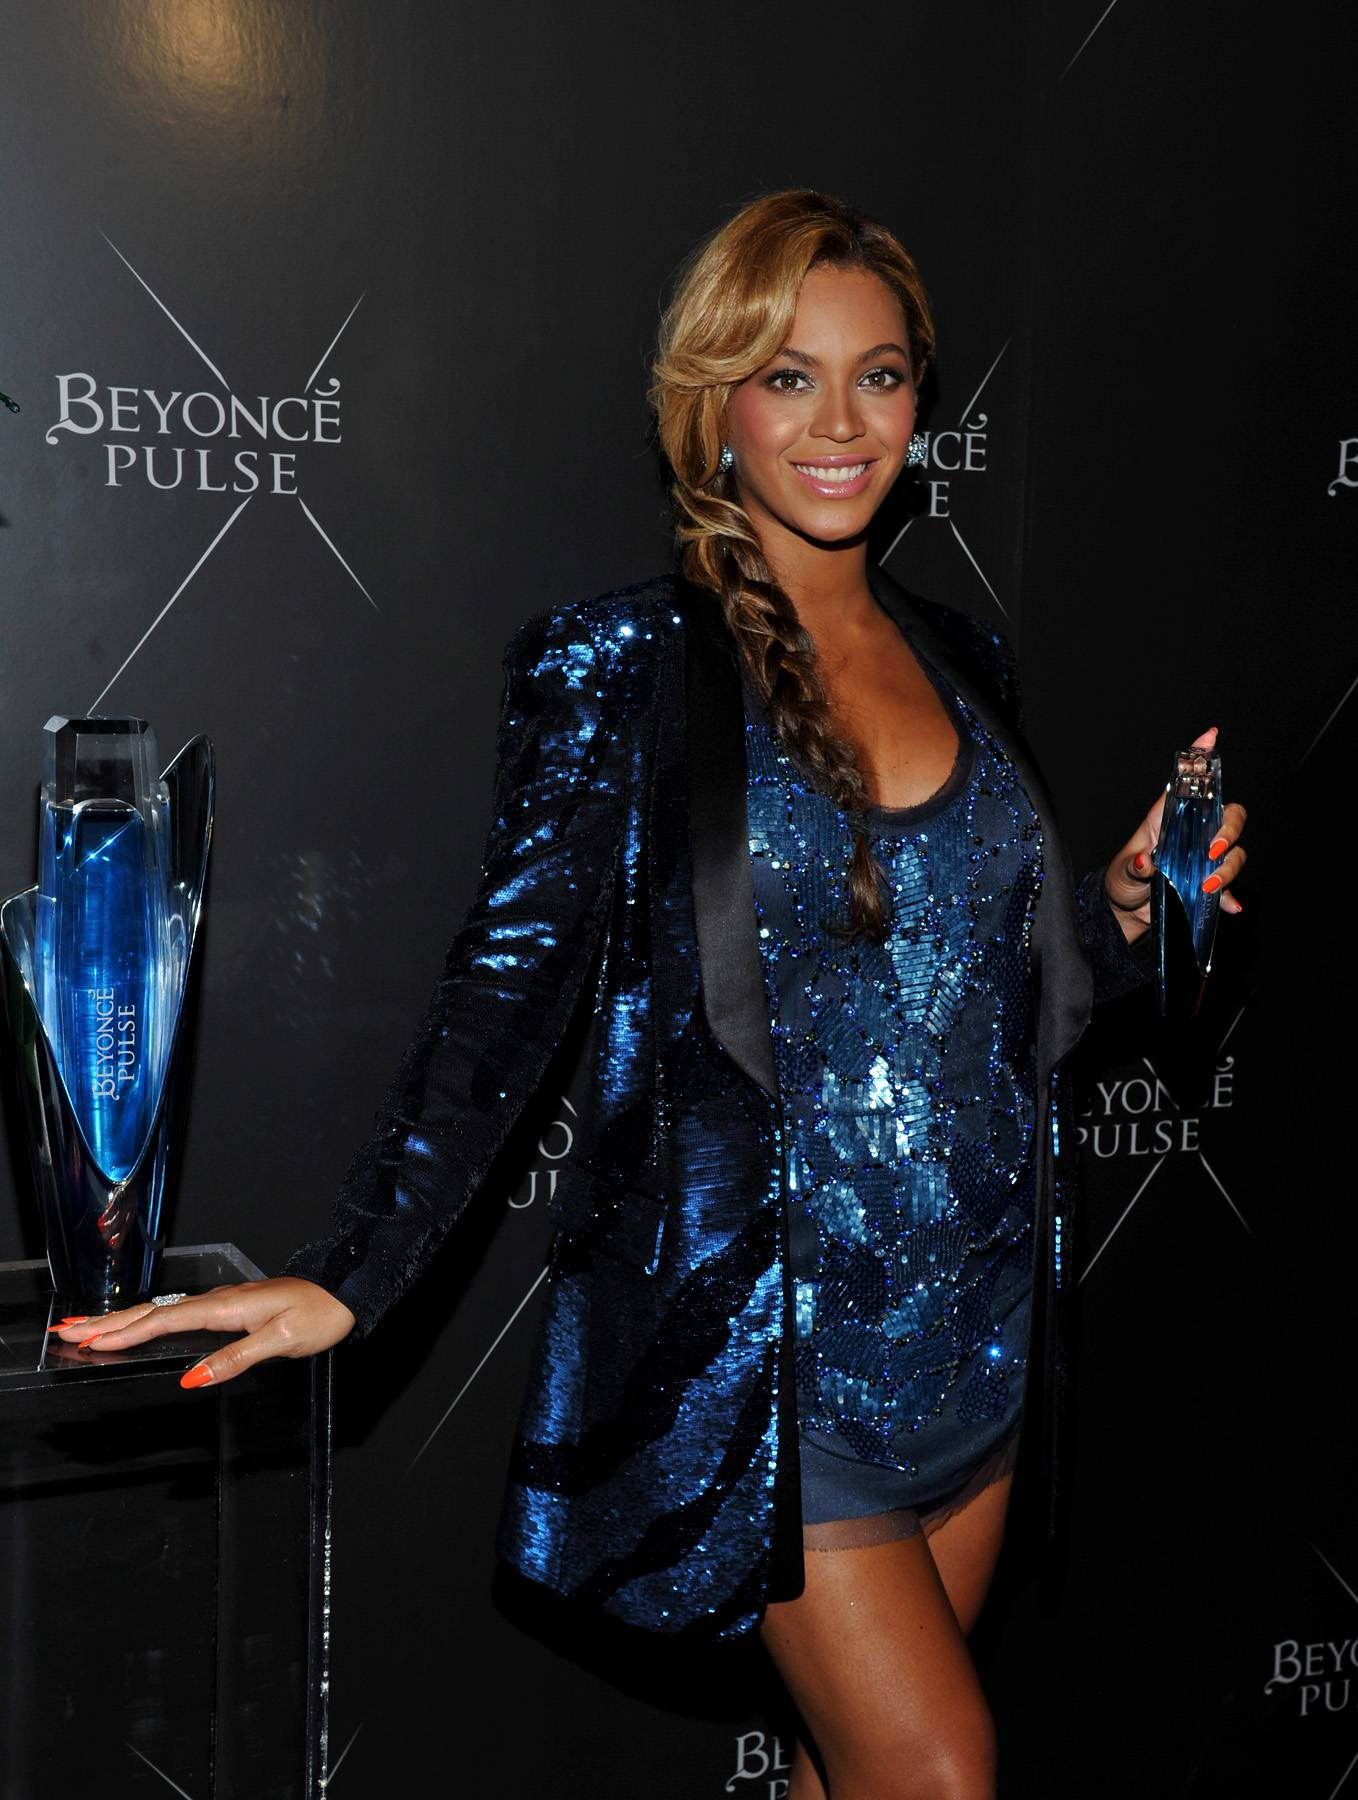 Beyonc? Keeps Our Pulses Racing - In between covering GQ and Vogue, performing at the Super Bowl and releasing her documentary, Beyonc? found time to shoot new promo pics for her fragrance, Pulse. We haven't seen the images yet, but they will be perfect and solidify 2013 as King Bey's year.  (Photo: Mike Coppola/Getty Images)